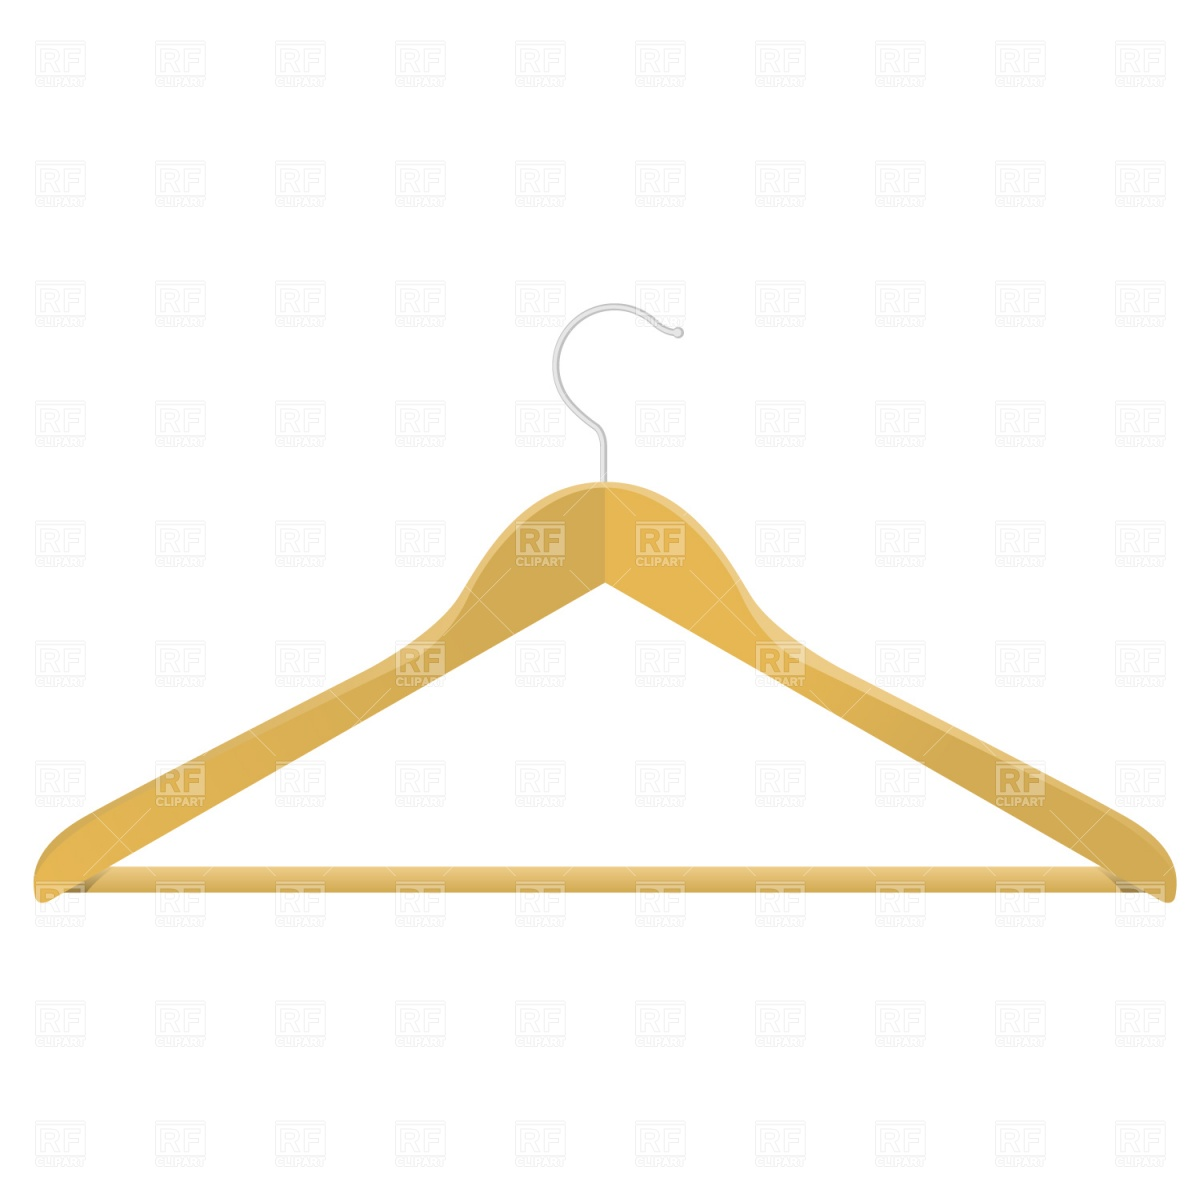 Wooden Clothes Hanger Download Royalty Free Vector Clipart  Eps